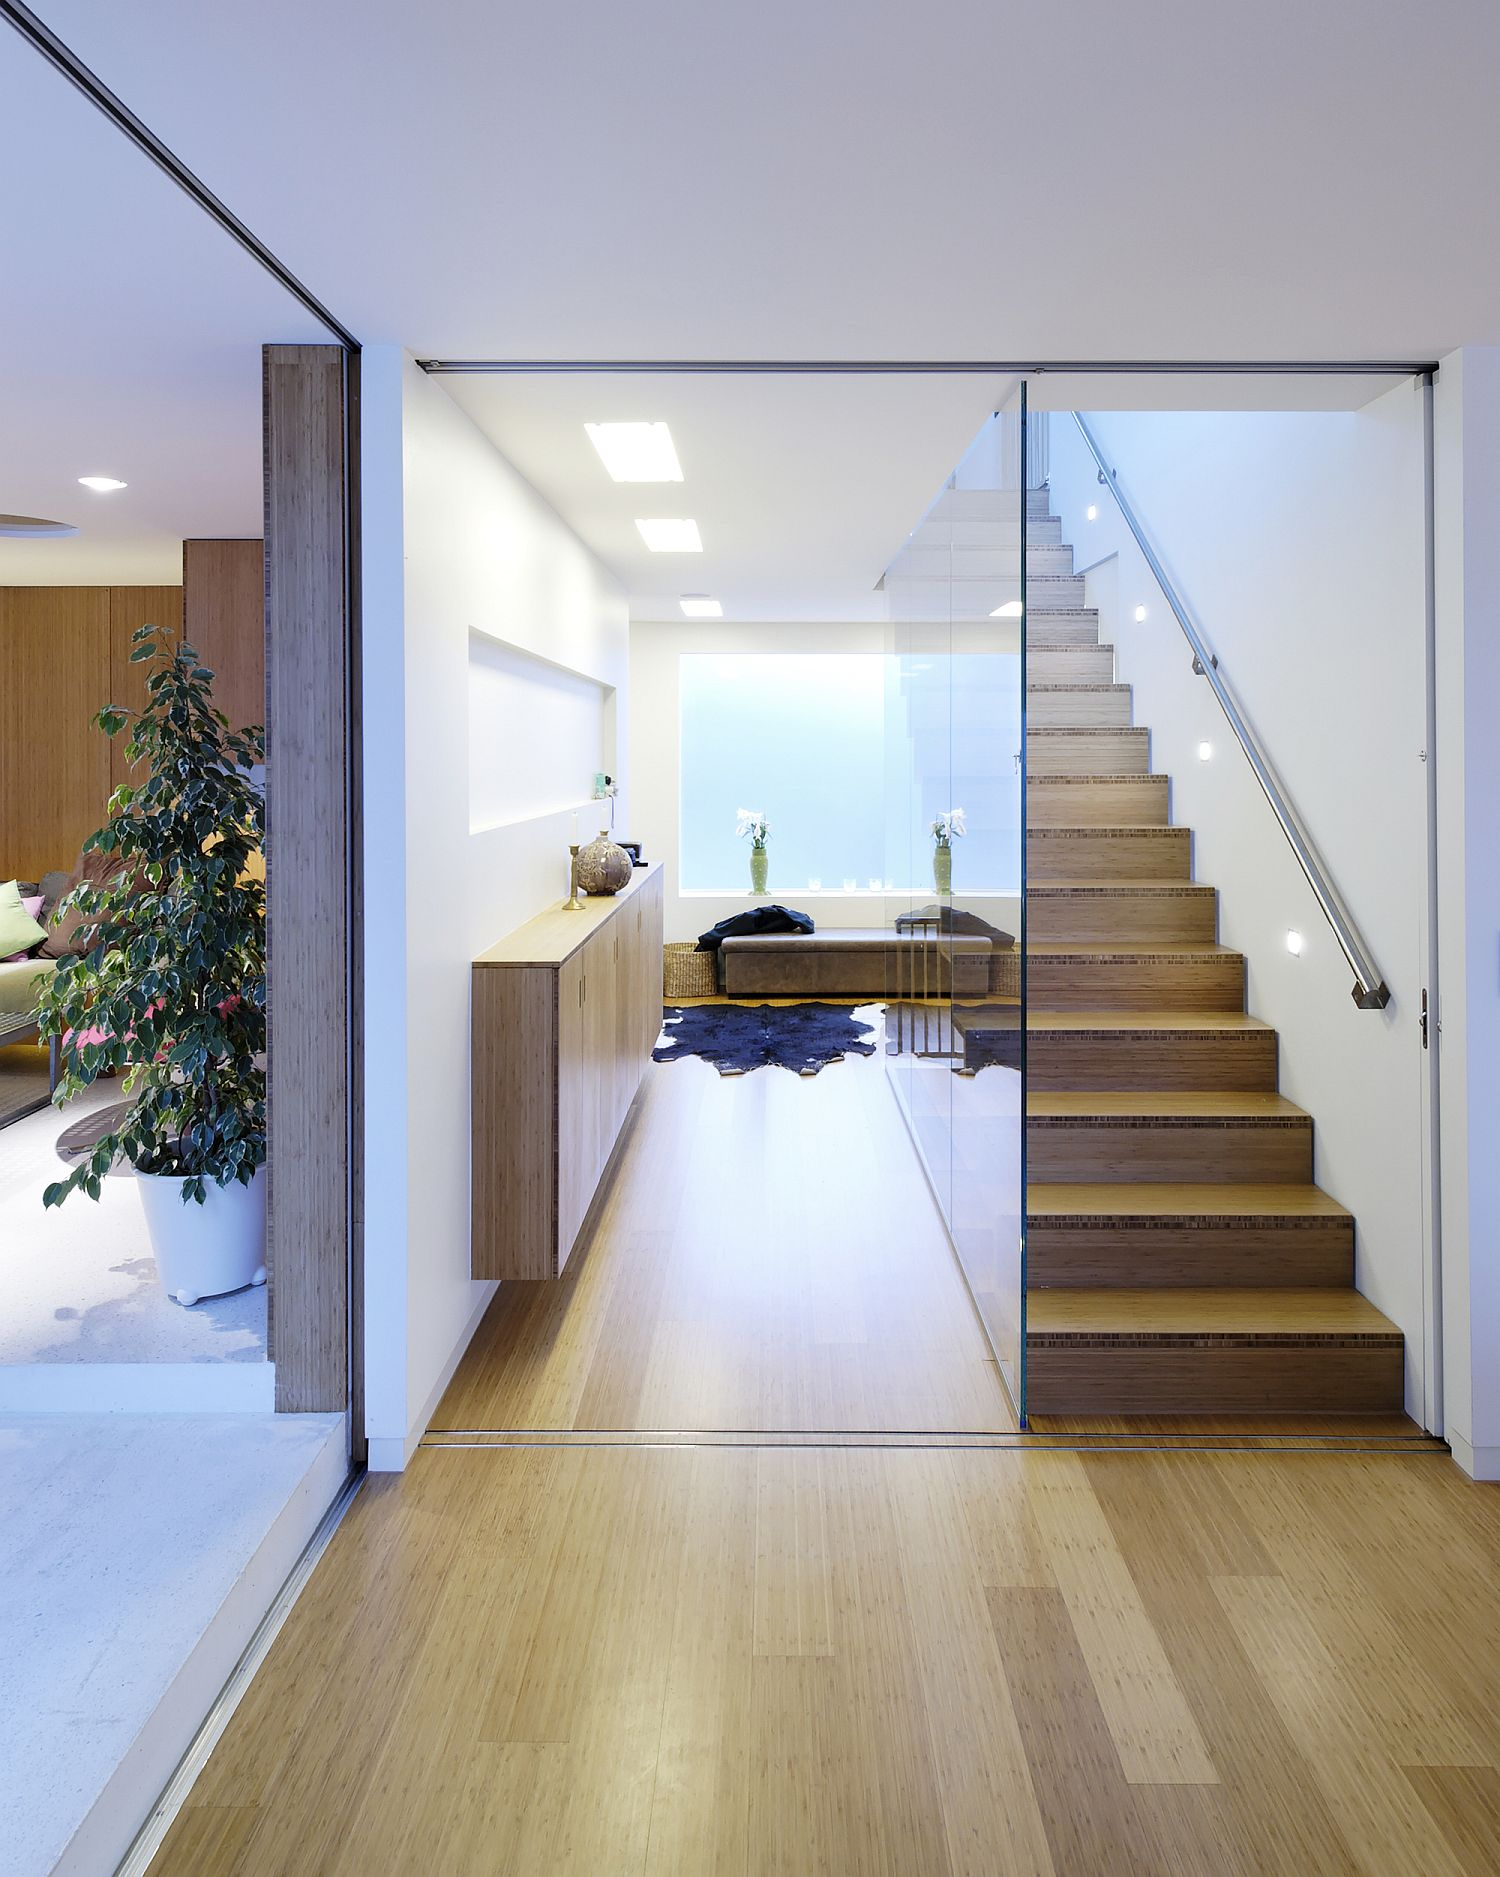 Wooden interior of the house that is lit up beautifully